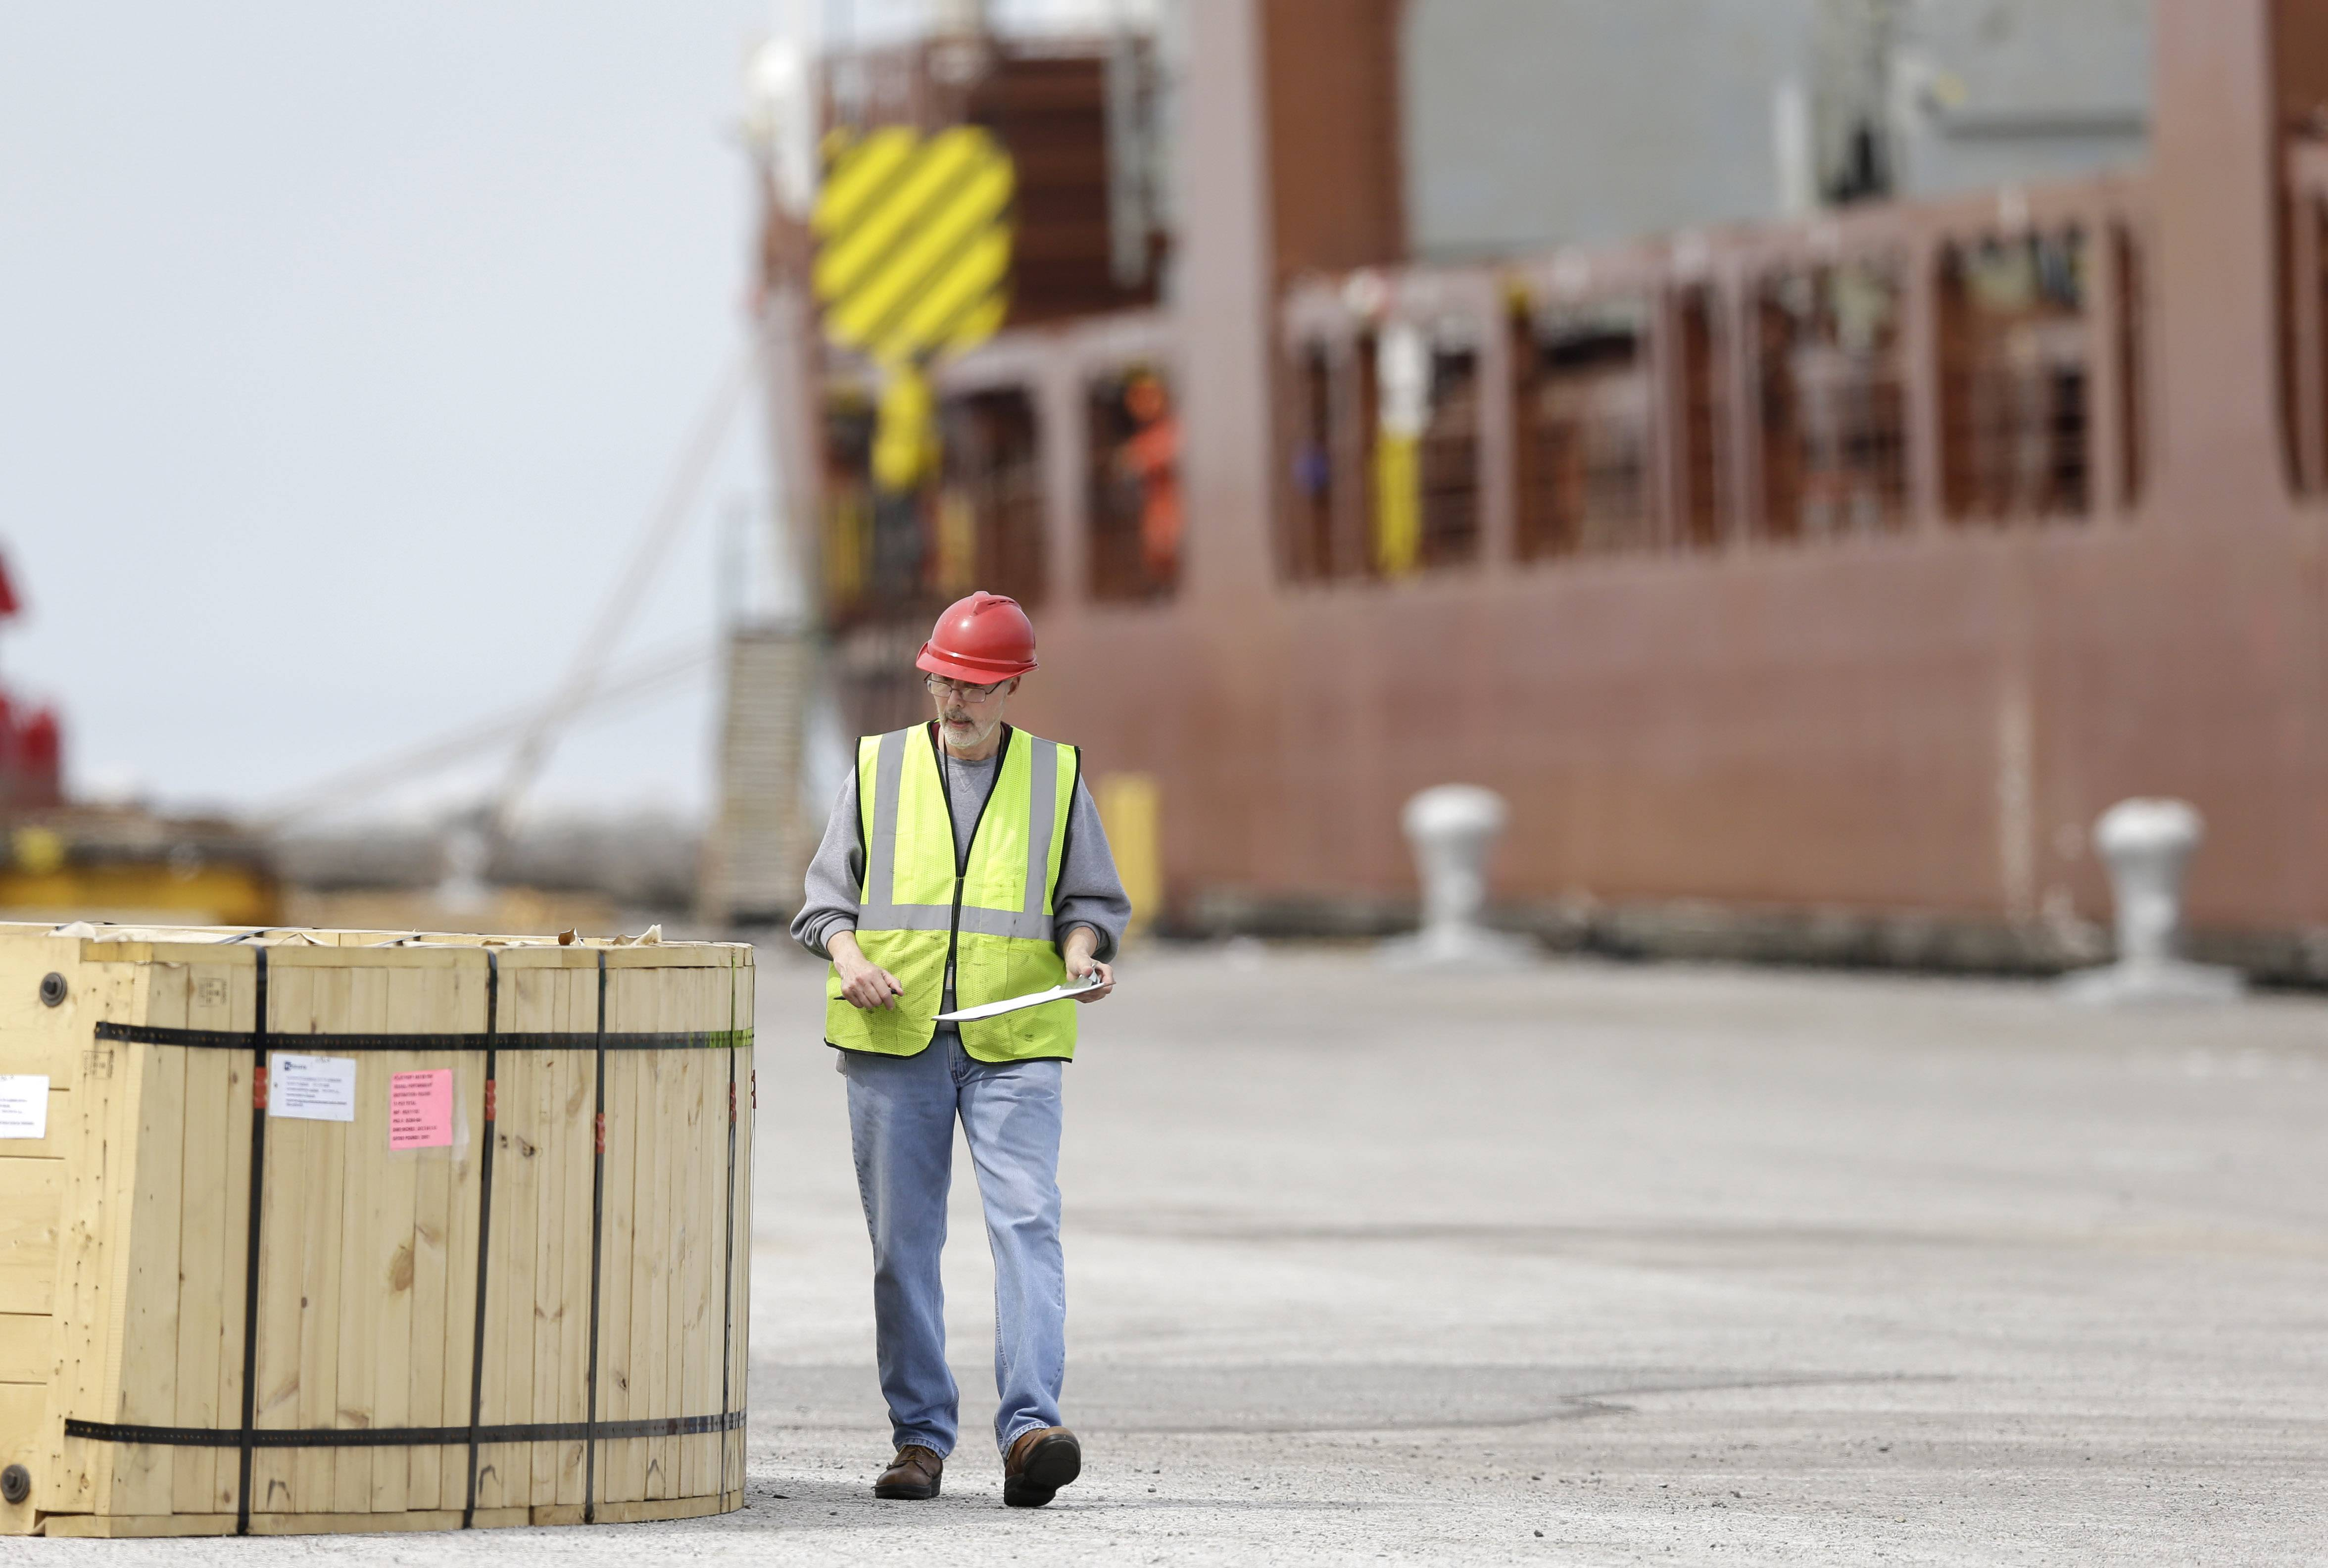 The U.S. trade deficit fell in May as U.S. exports hit an all-time high, helped by a jump in exports of petroleum products. Imports dipped slightly. The trade deficit narrowed 5.6 percent in May to $44.4 billion after hitting a two-year high of $47 billion in April, the Commerce Department reported Thursday.